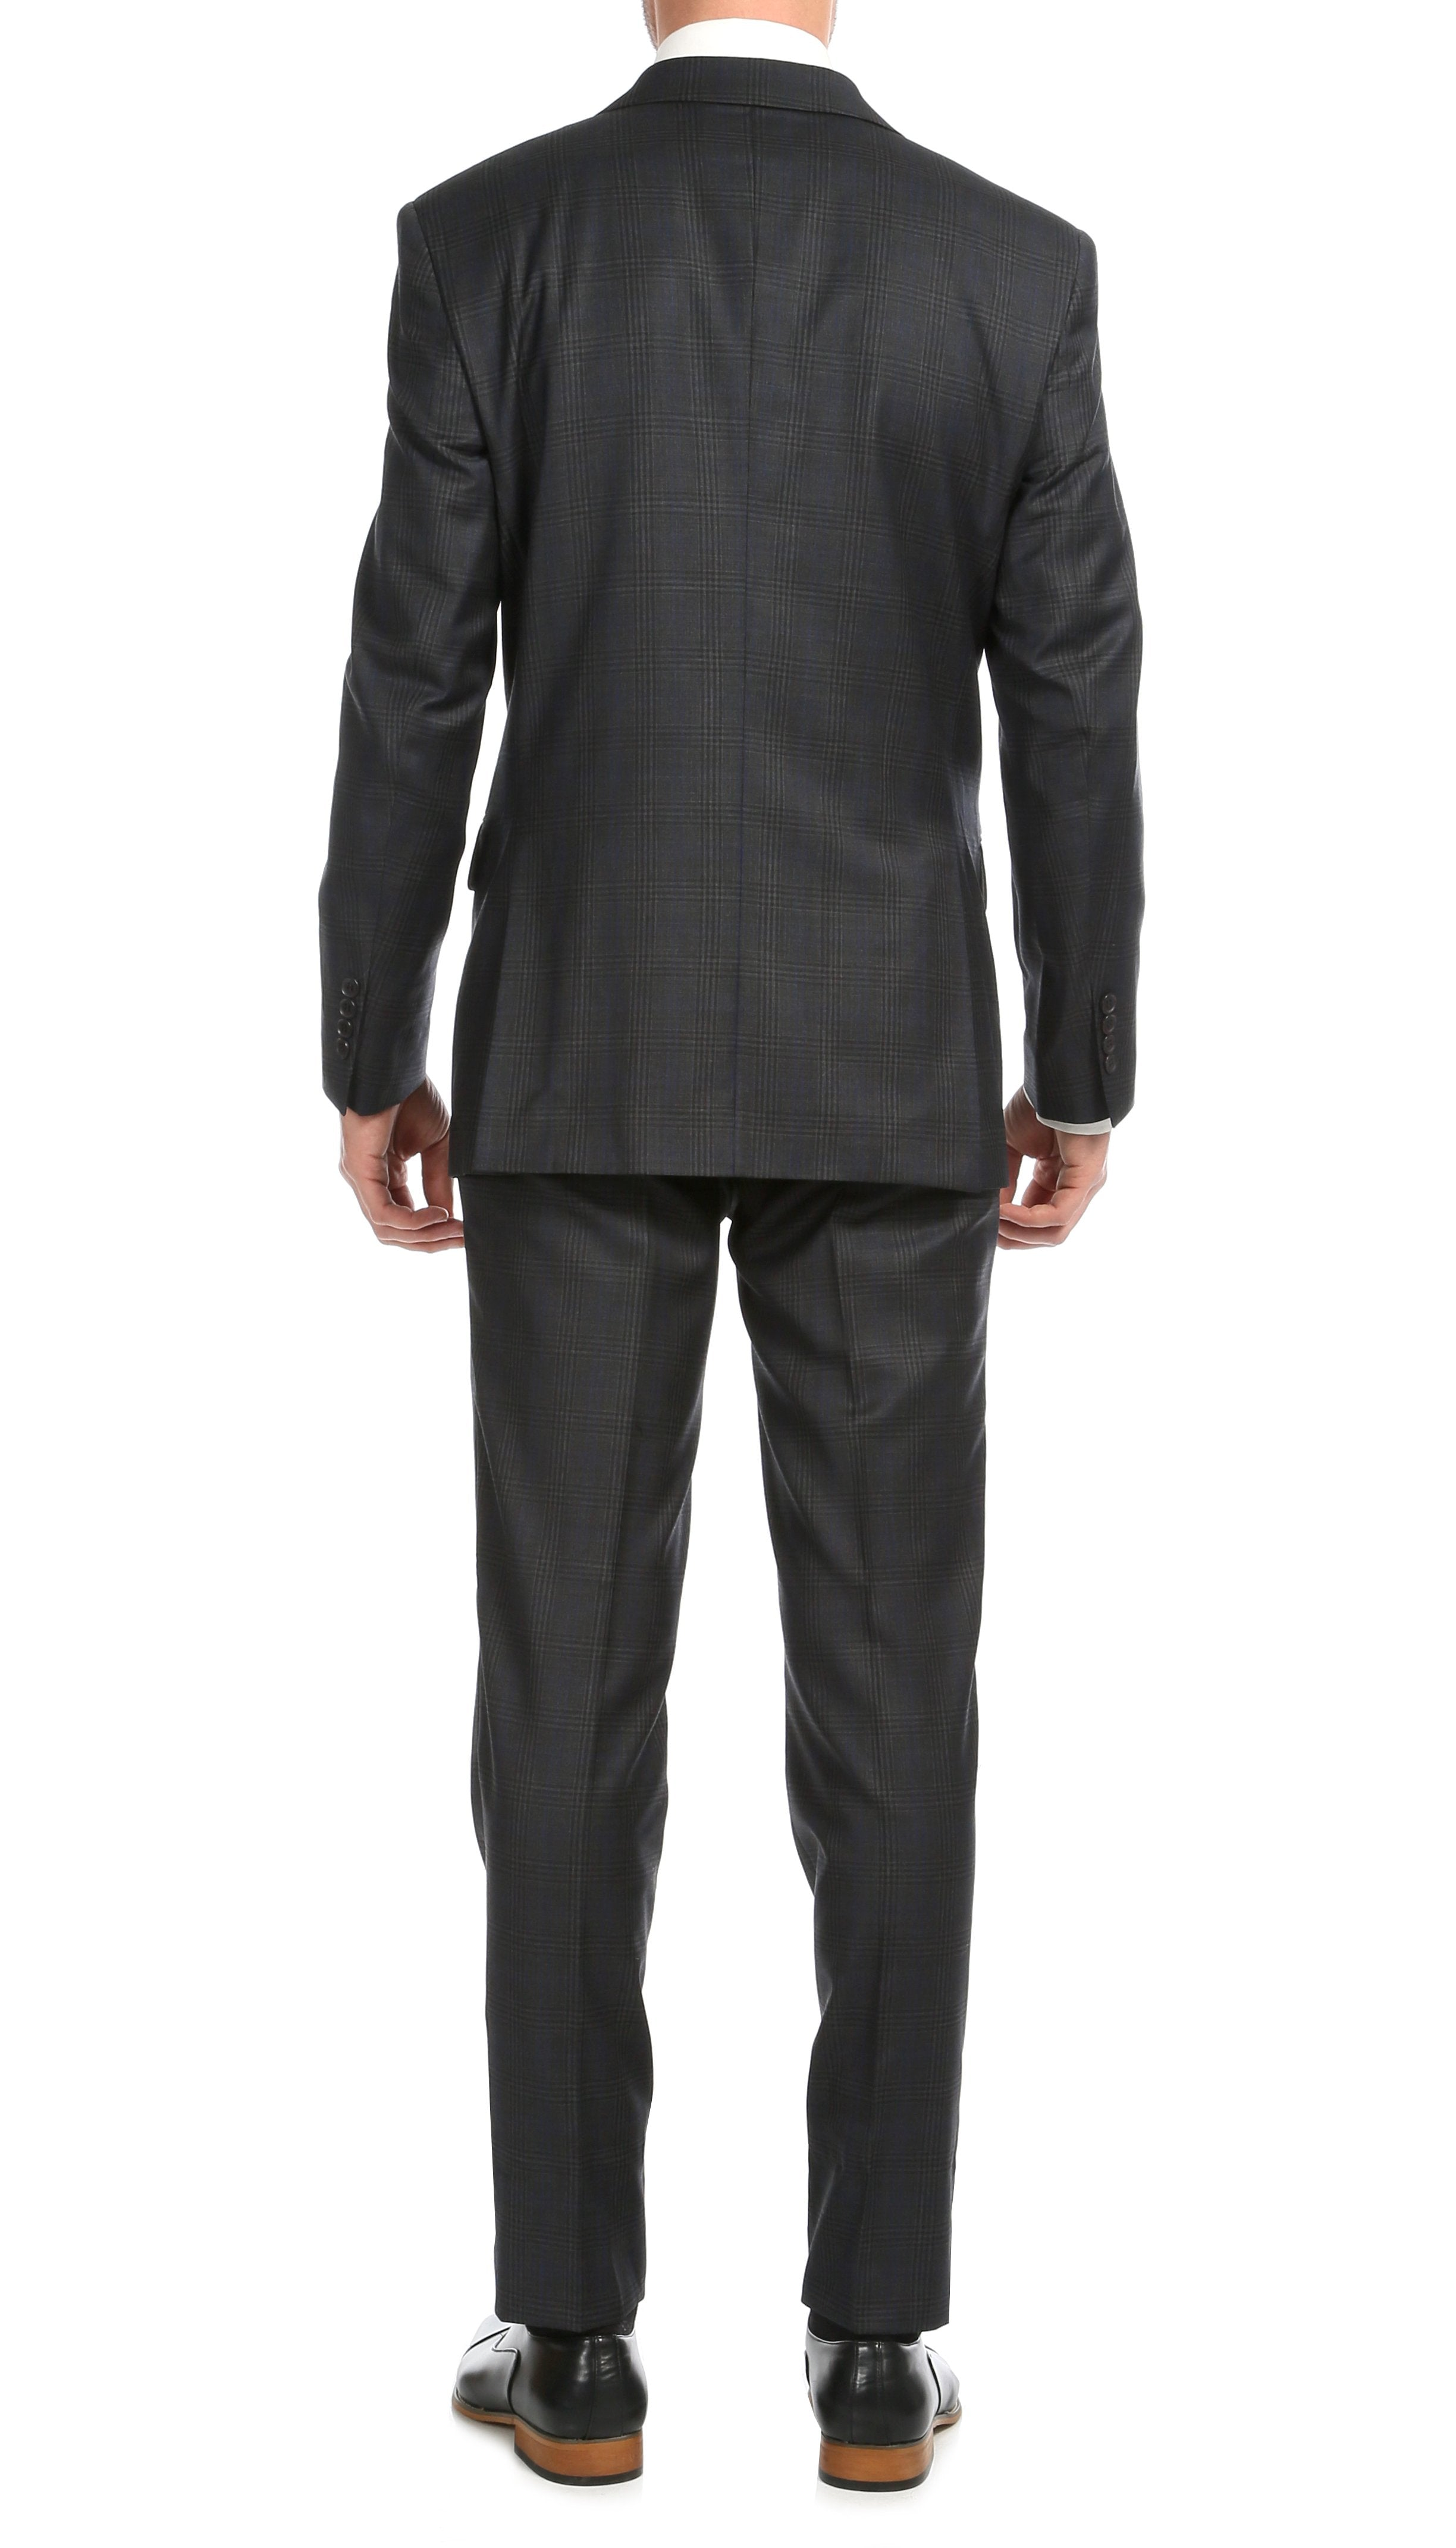 Yves Grey Plaid Check Men's Premium 2pc Premium Wool Slim Fit Suit - Ferrecci USA